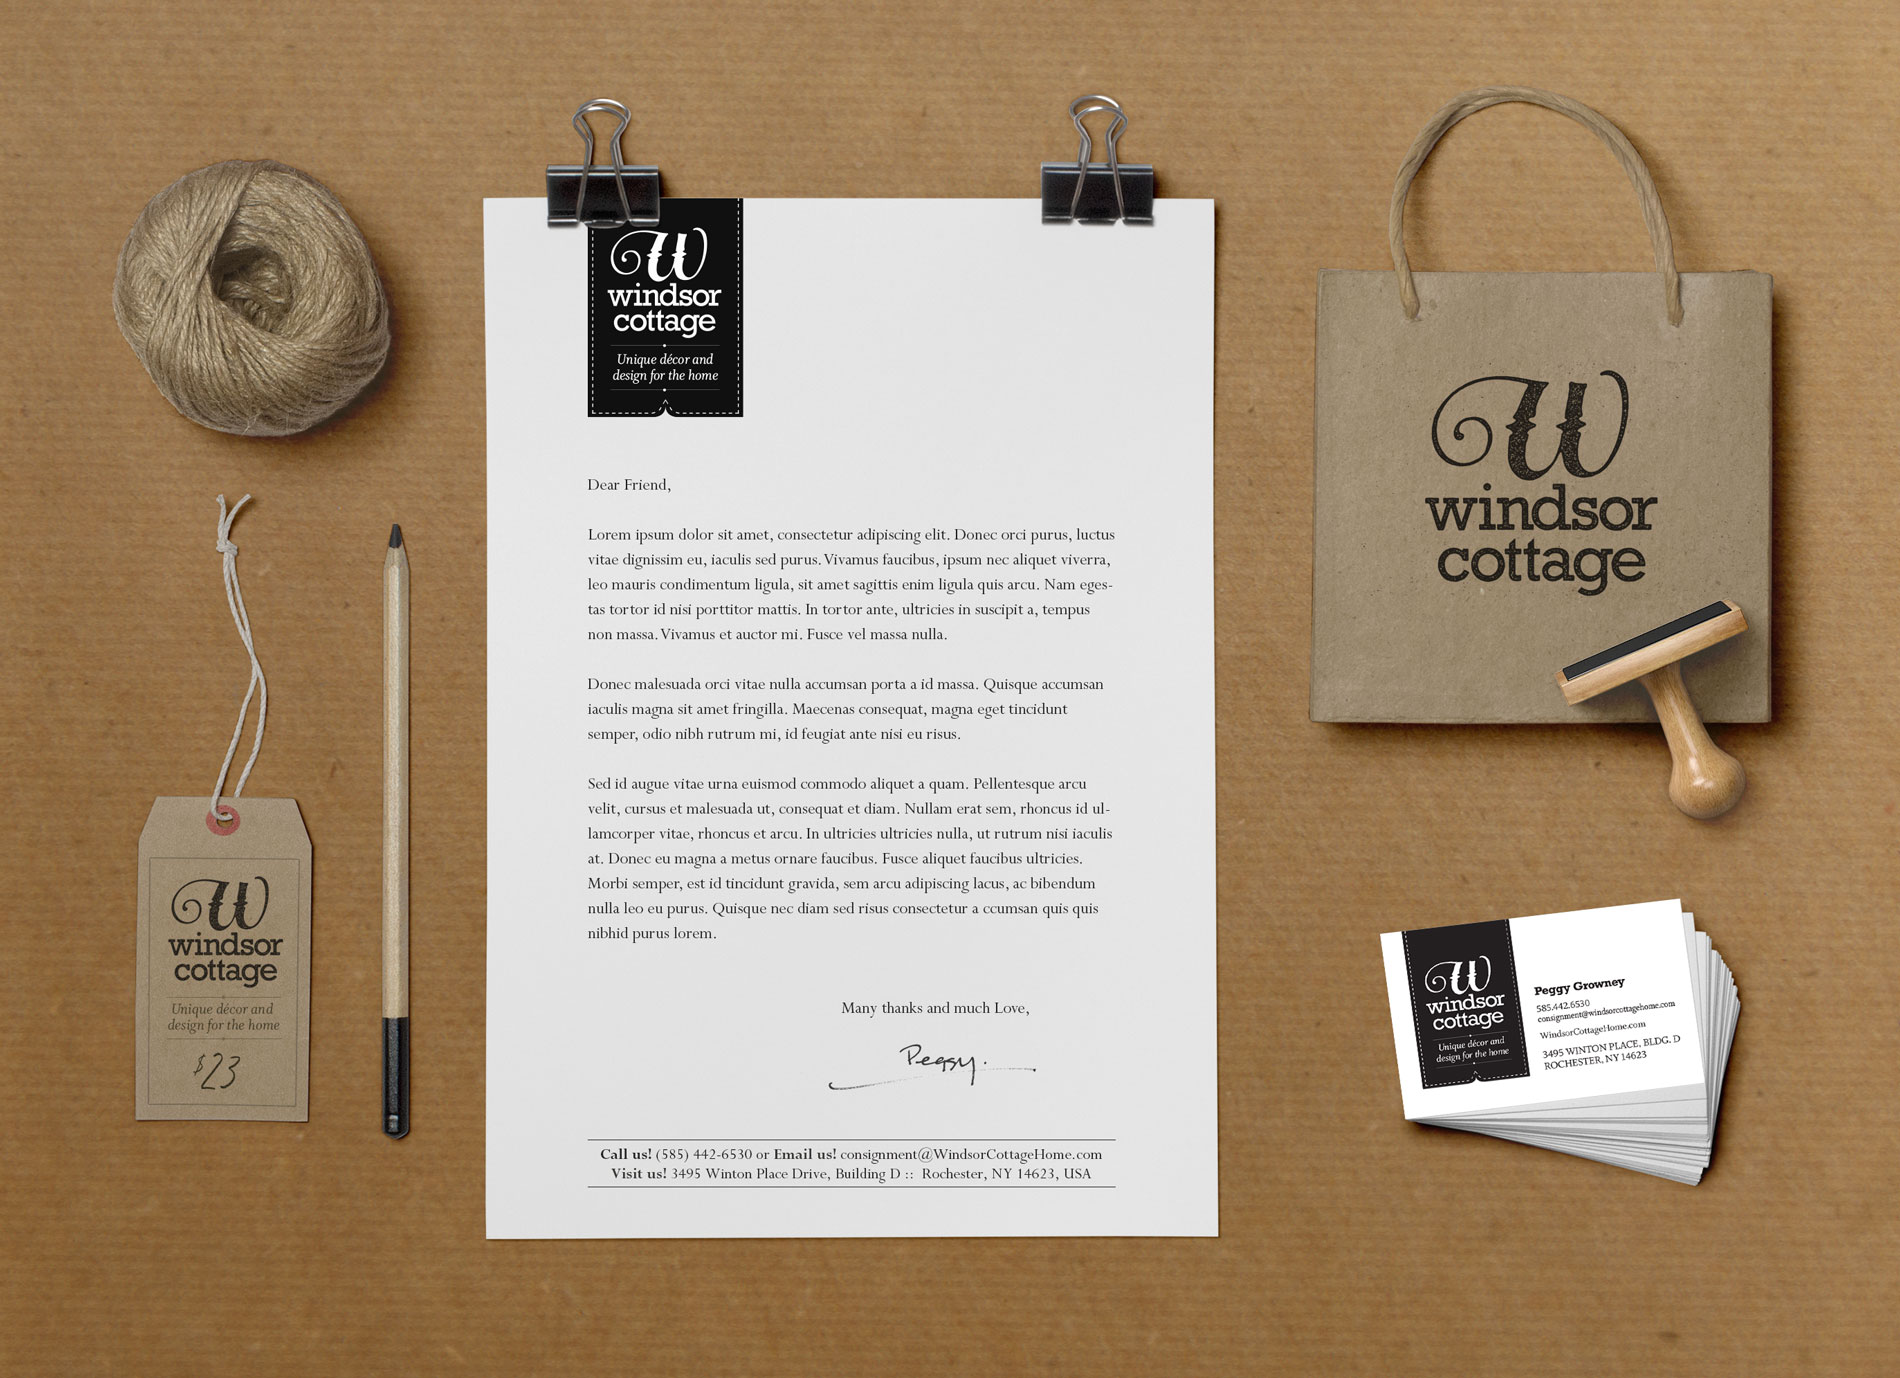 Photo of Windsor Cottage business cards and letterhead designs